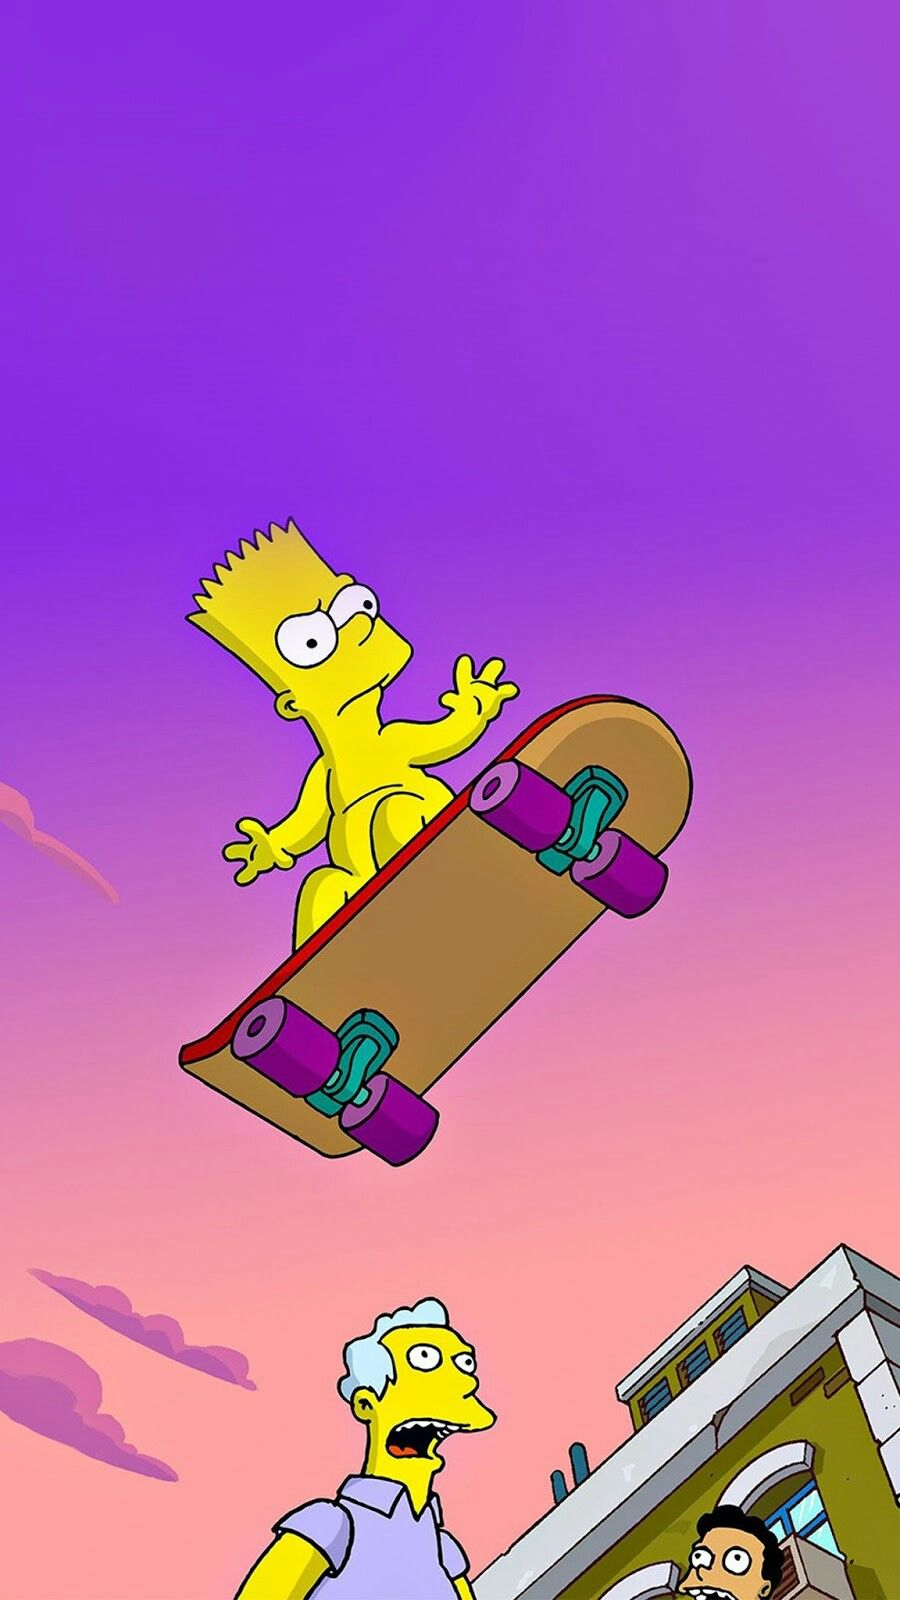 Pin By Carla Magliano On Wallpaper For My Phone Simpson Wallpaper Iphone Simpsons Art The Simpsons